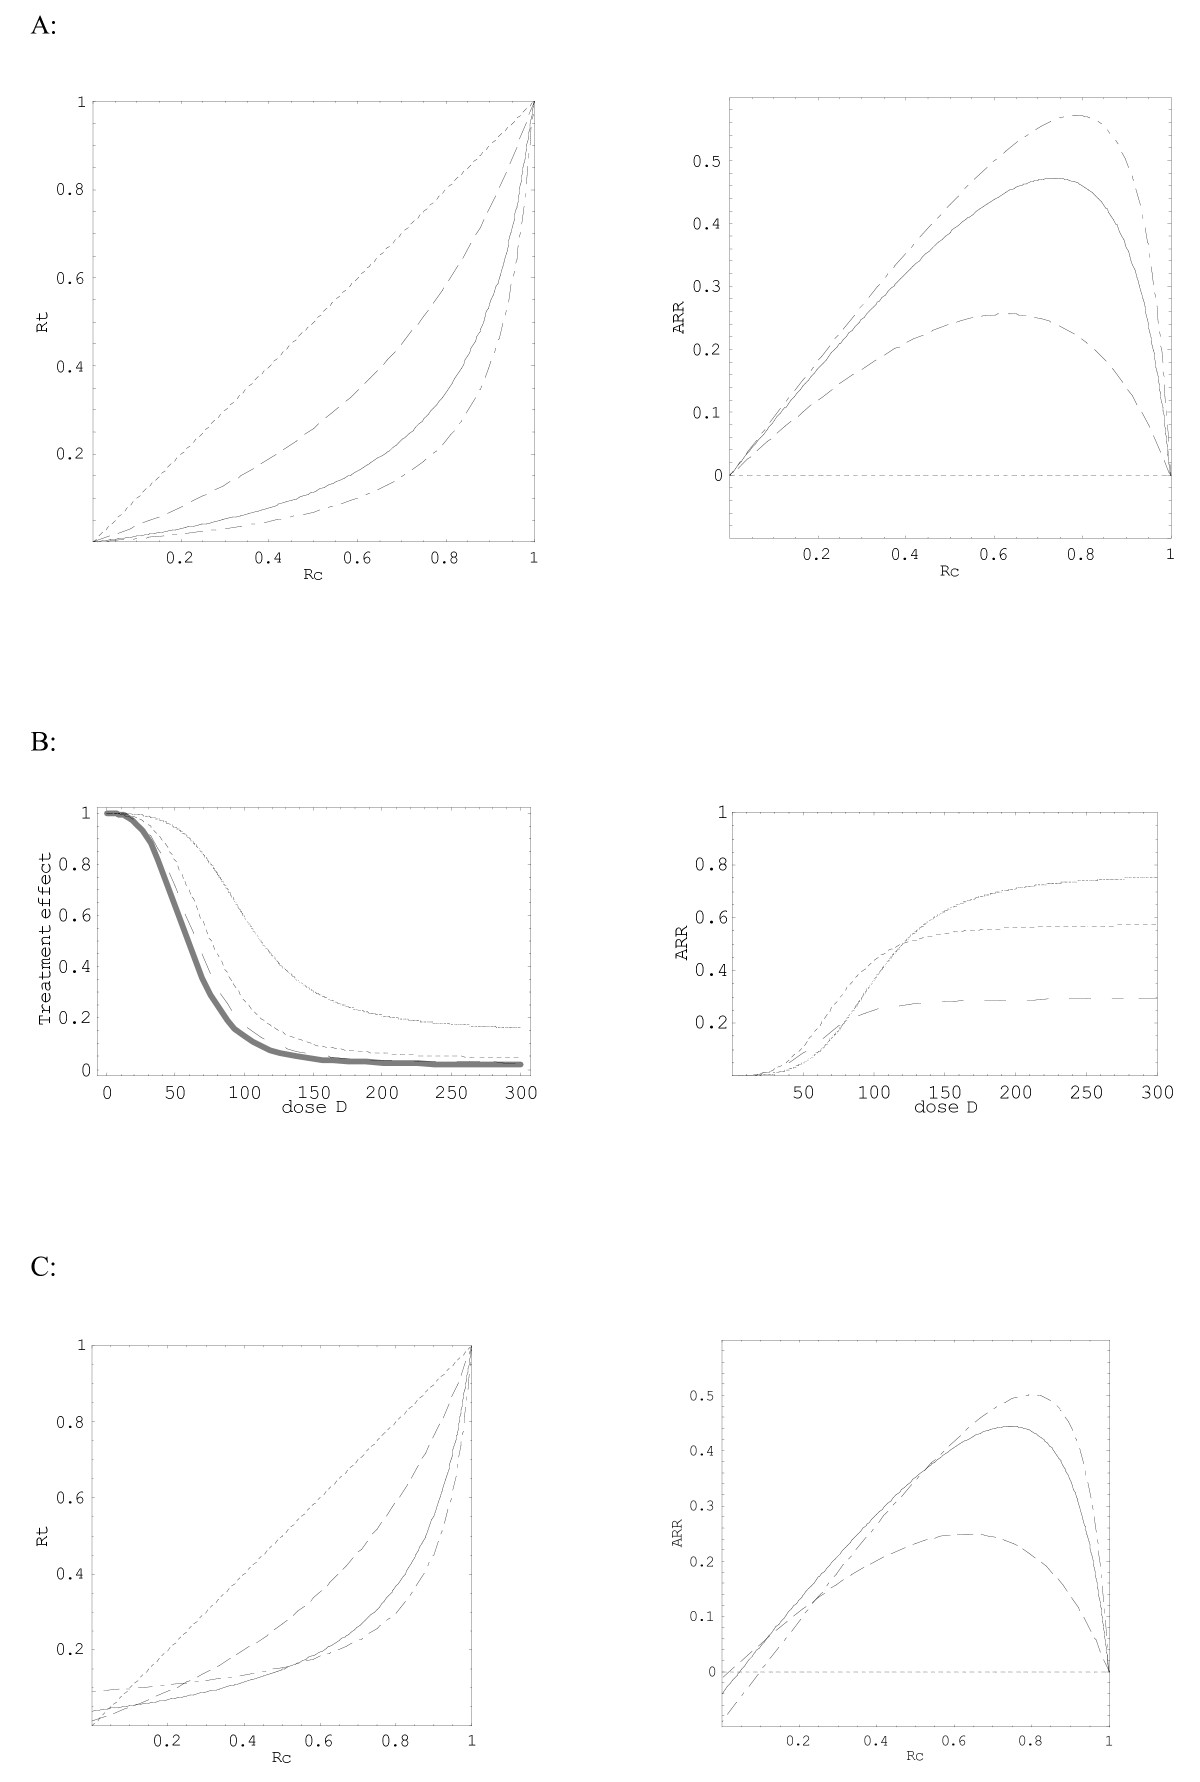 http://static-content.springer.com/image/art%3A10.1186%2F1742-7622-6-1/MediaObjects/12982_2008_Article_78_Fig2_HTML.jpg